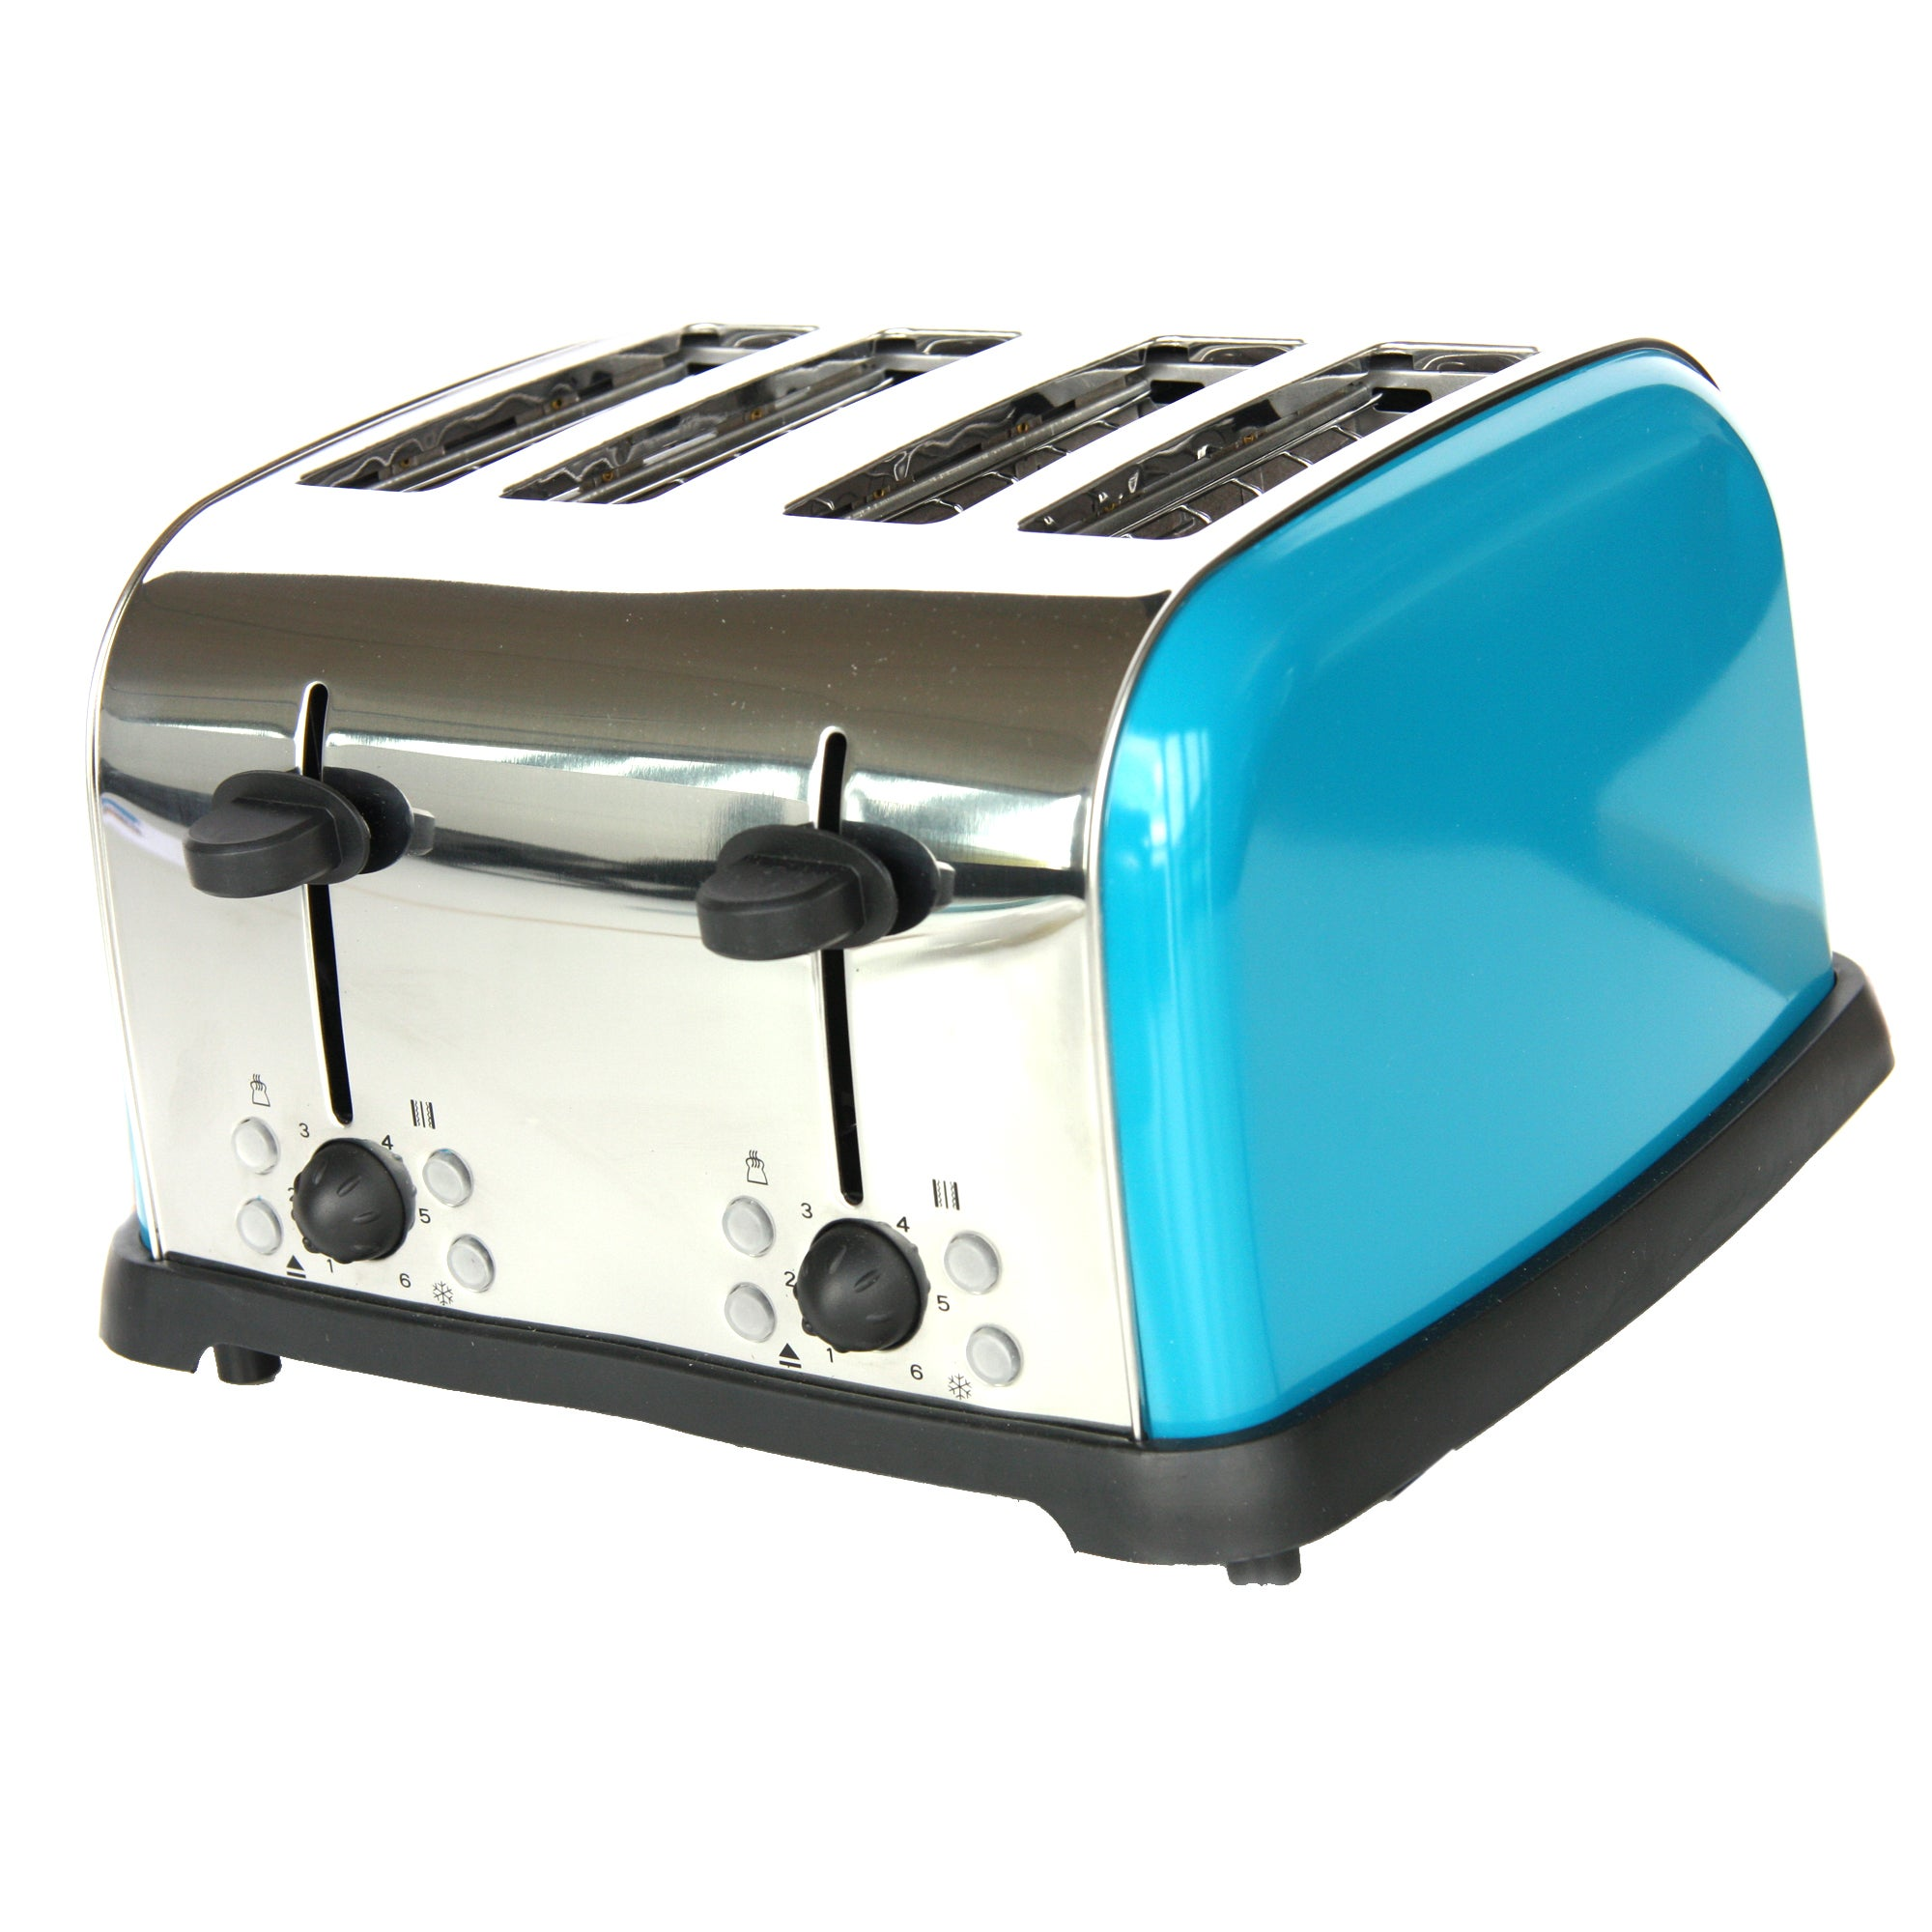 Teal Spectrum 4 Slice Toaster